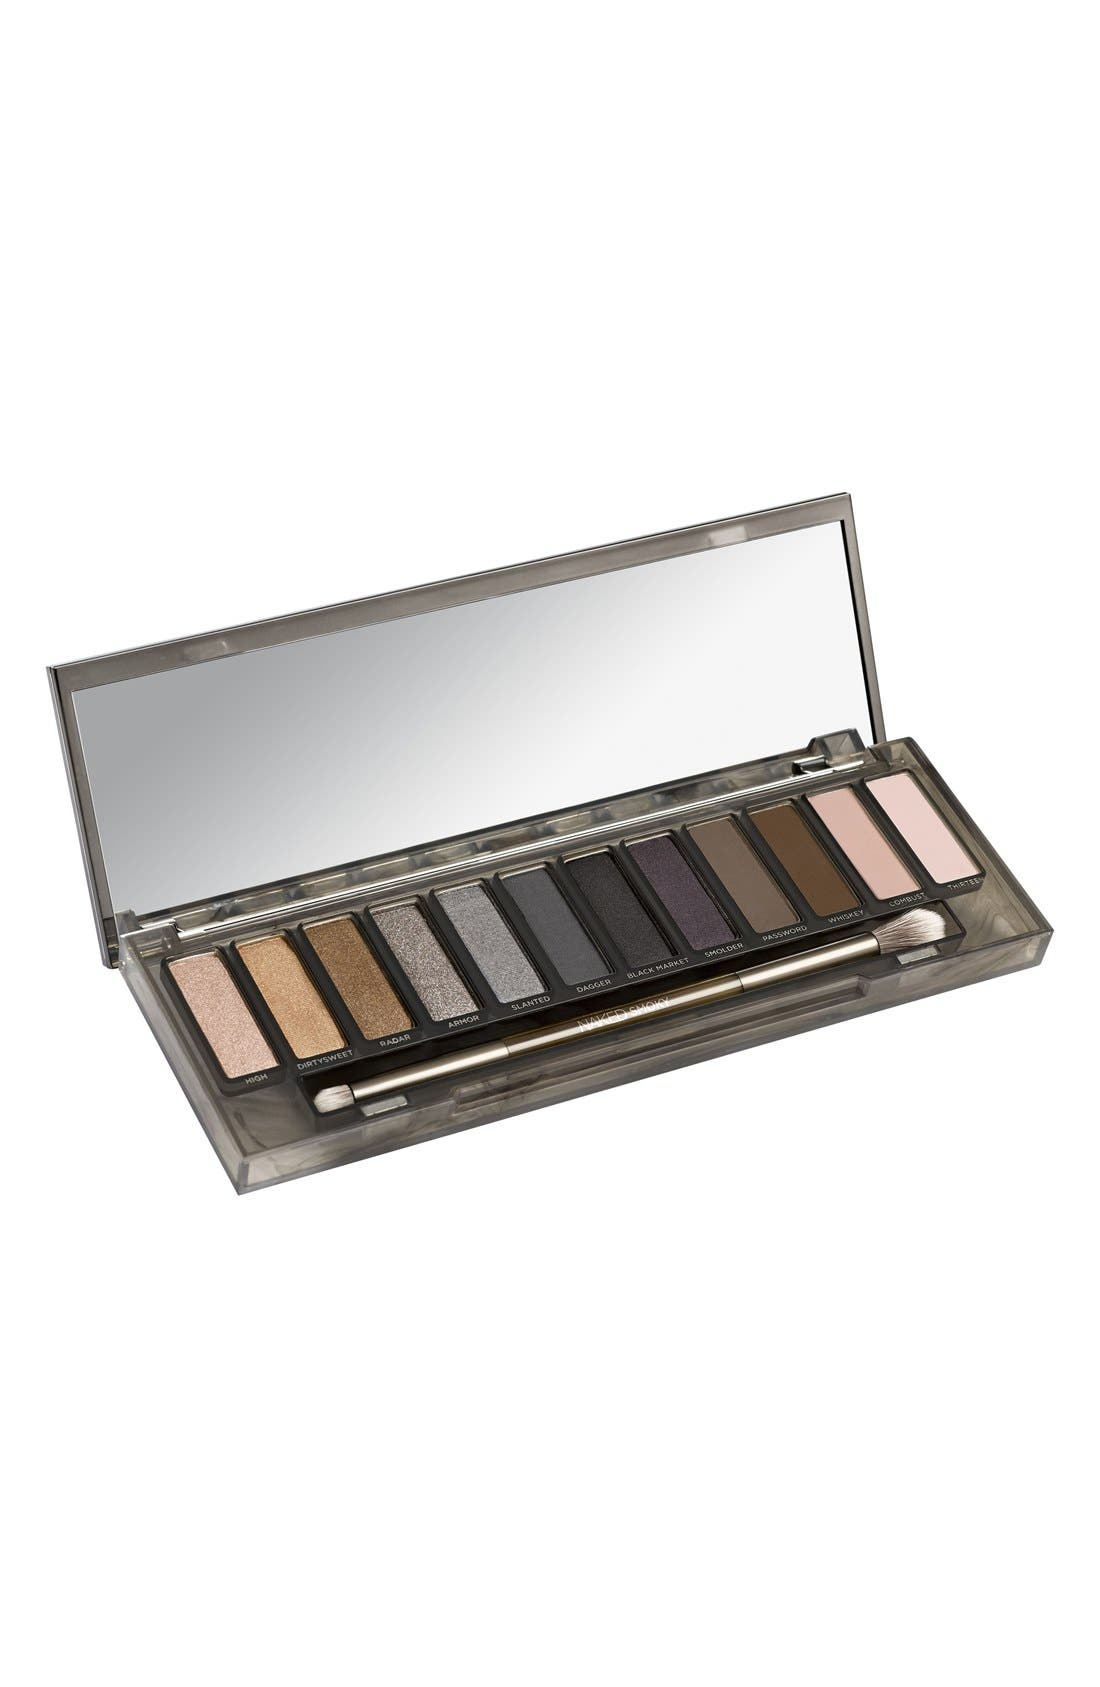 Image of Urban Decay Naked Smoky Palette